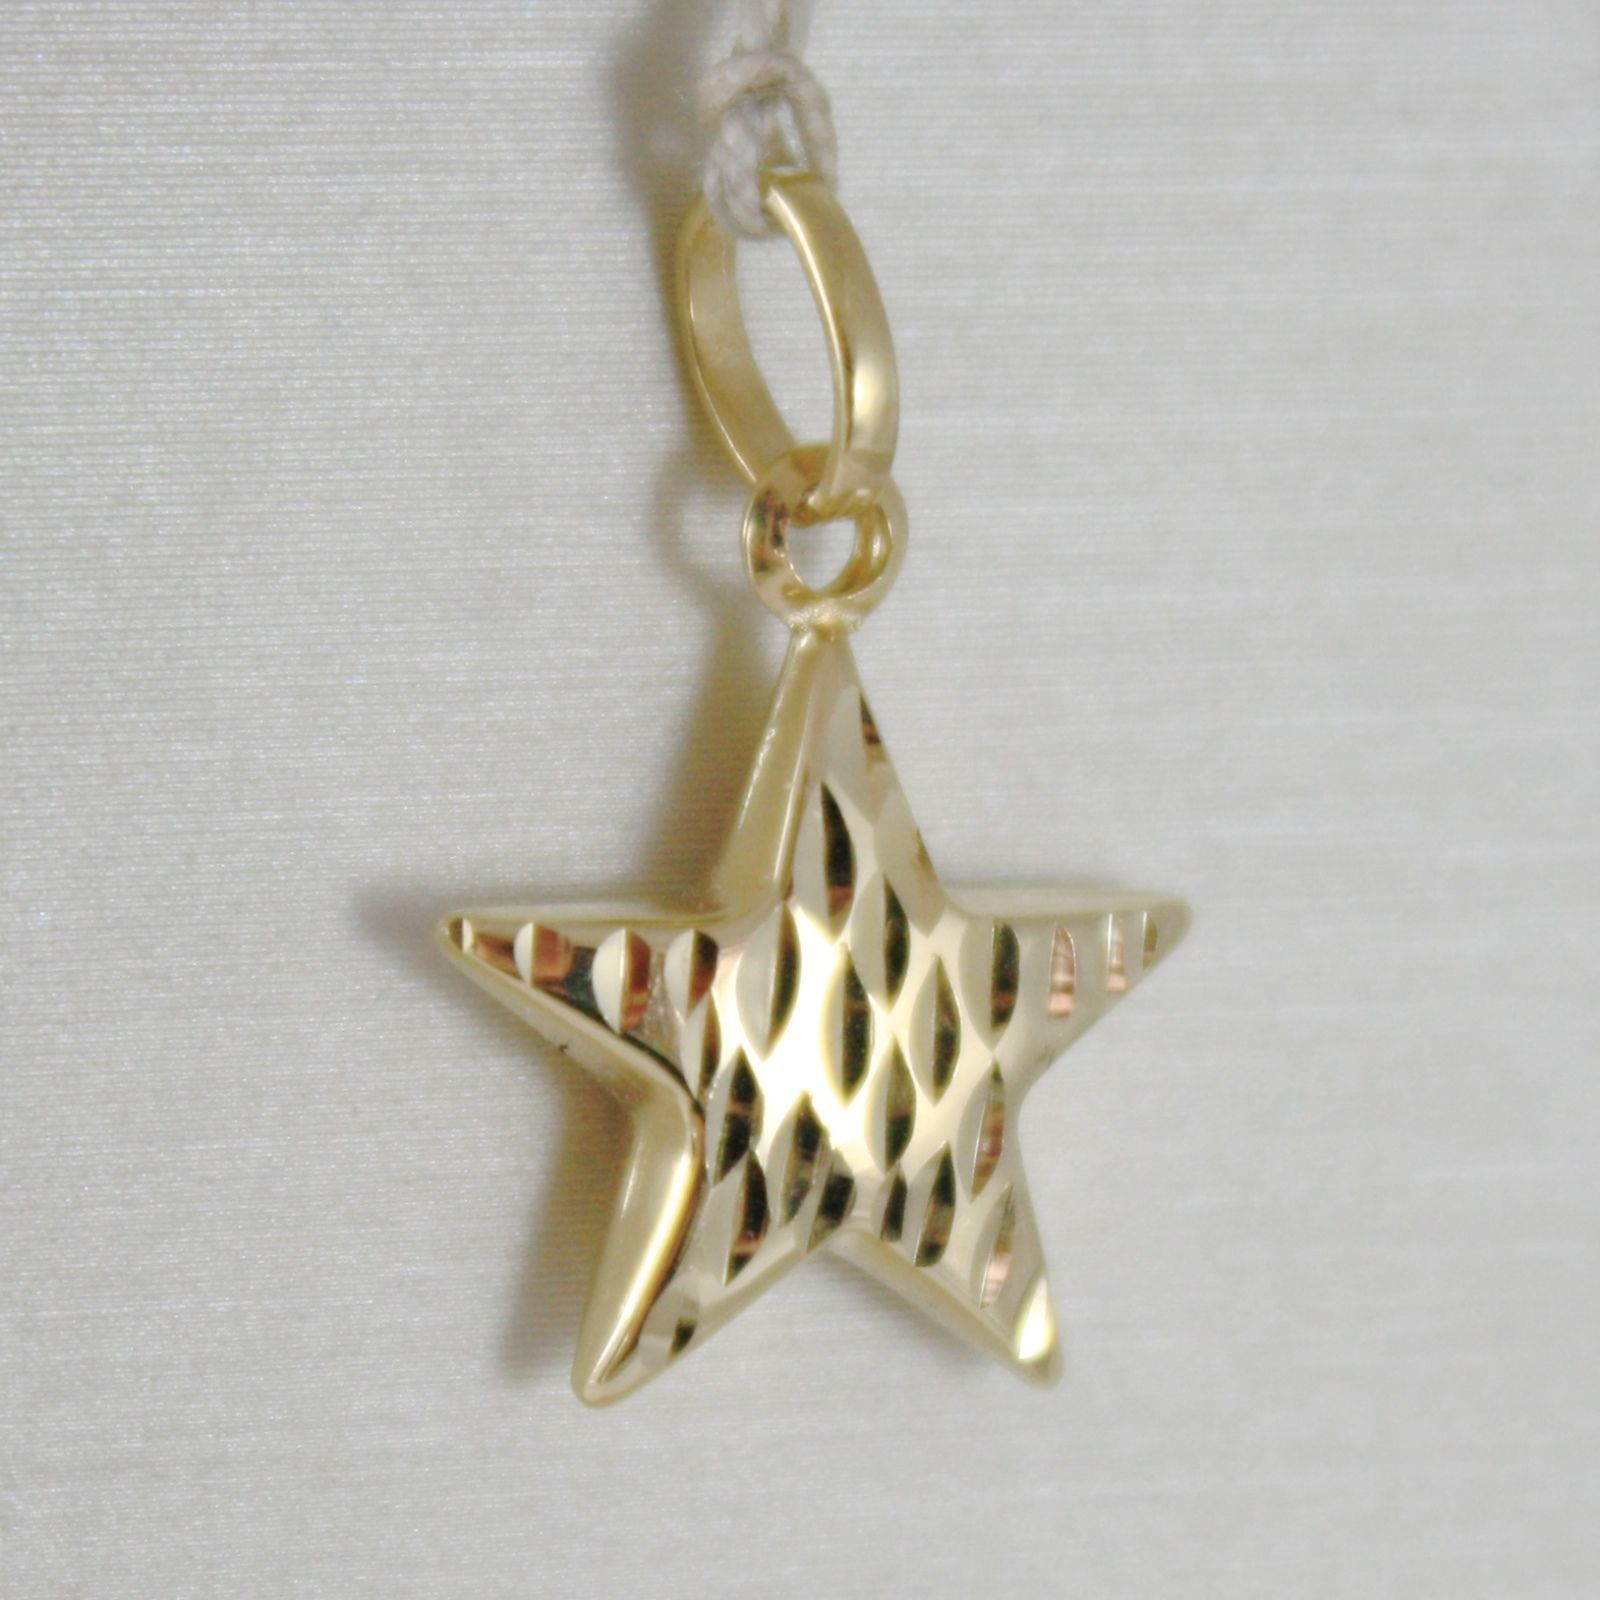 18K YELLOW GOLD ROUNDED STAR PENDANT CHARM 20 MM WORKED & SMOOTH, MADE IN ITALY